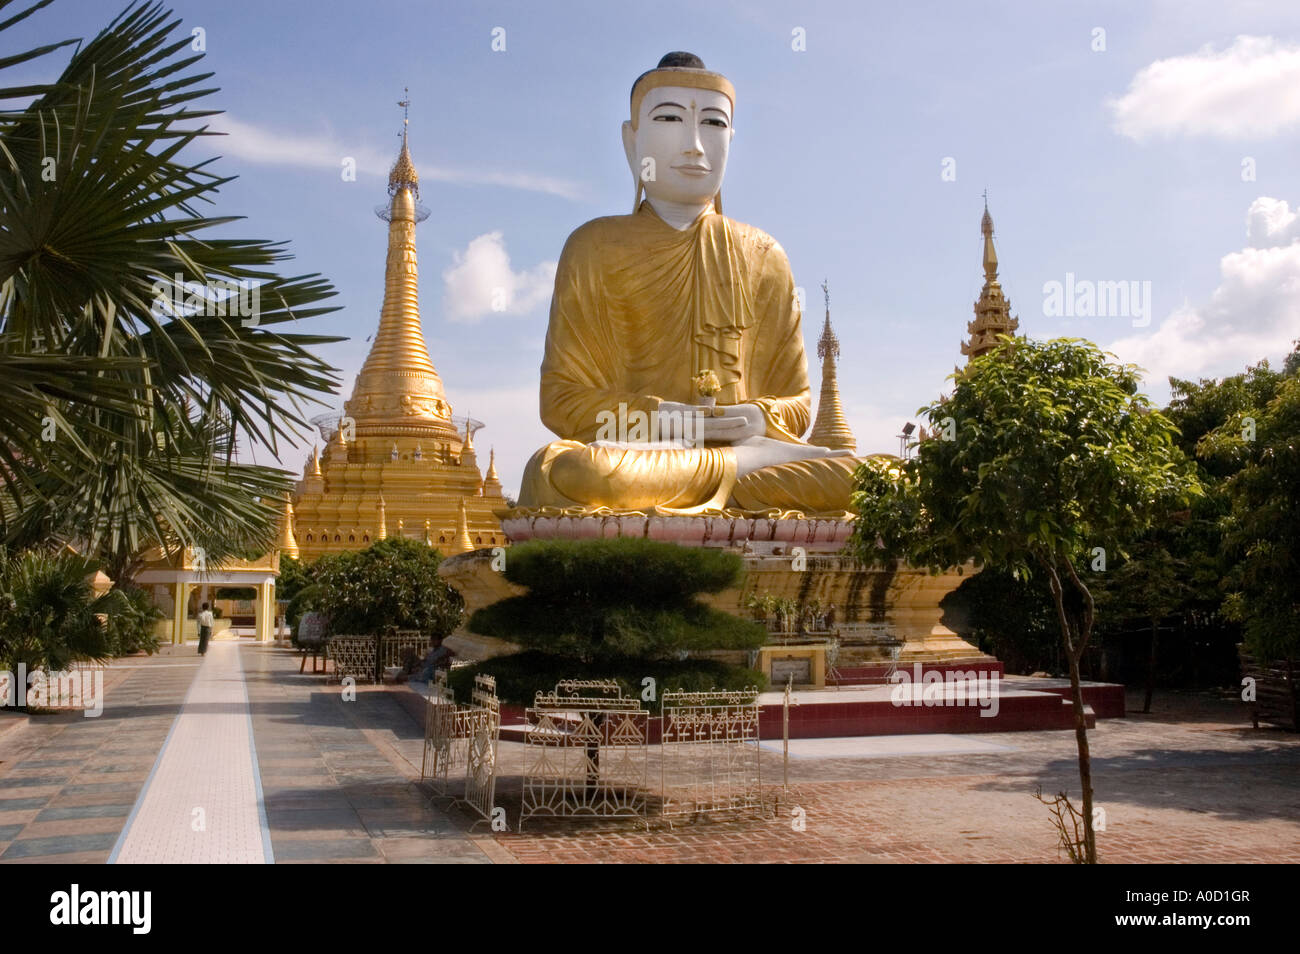 Stock photograph of the Shwezigon Paya in central Monywa in Myanmar 2006 Stock Photo